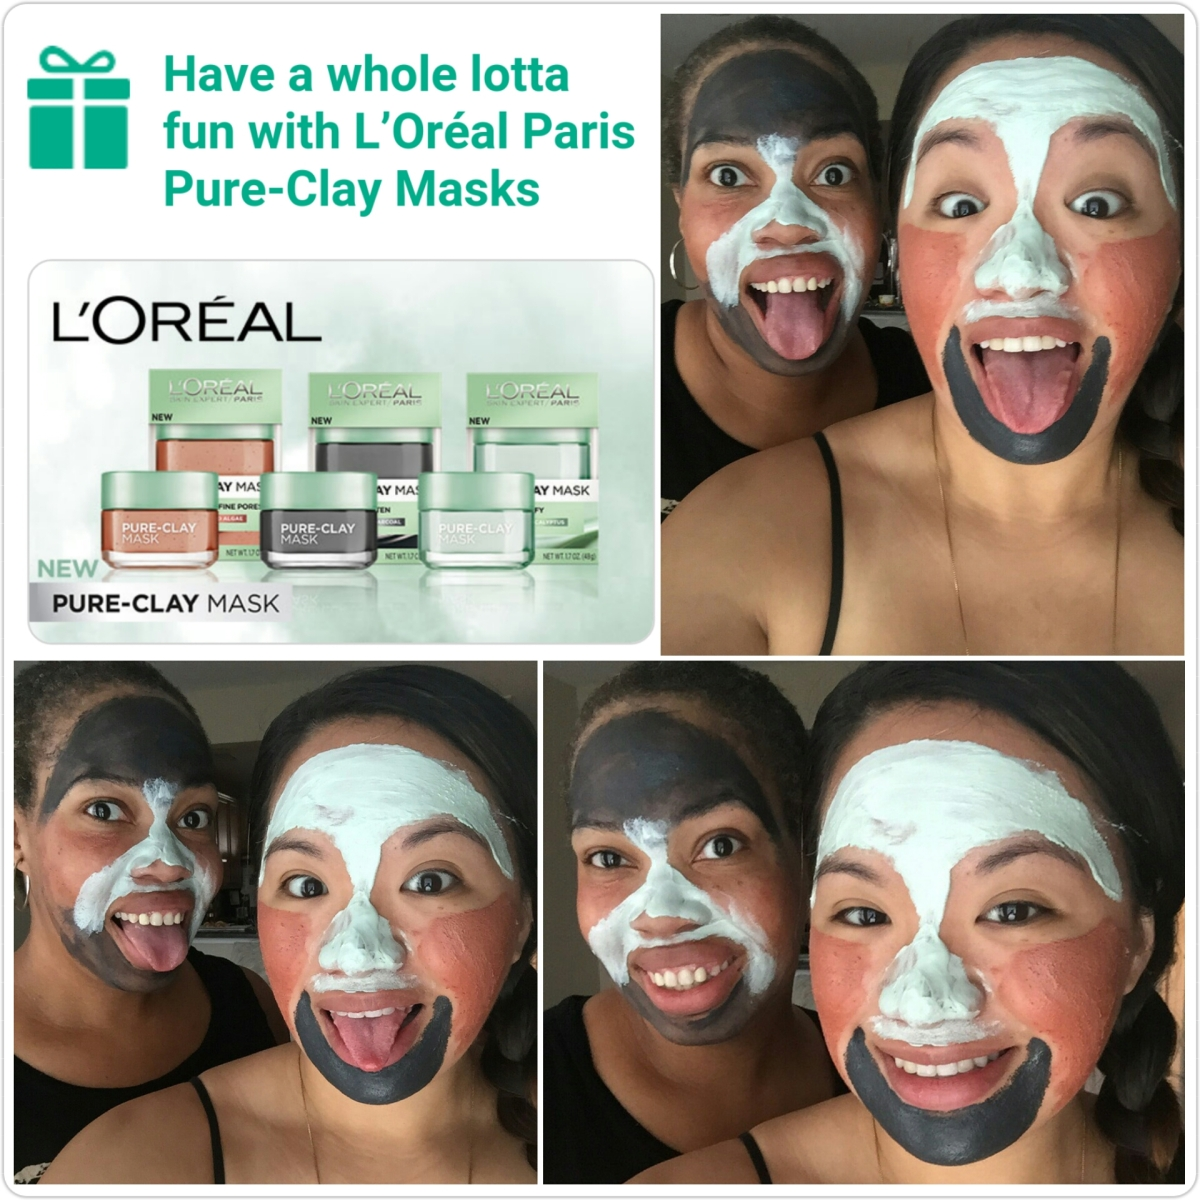 #WellnessWednesday Skincare Review @LOrealParisUSA #PureClayMask #gotitfree